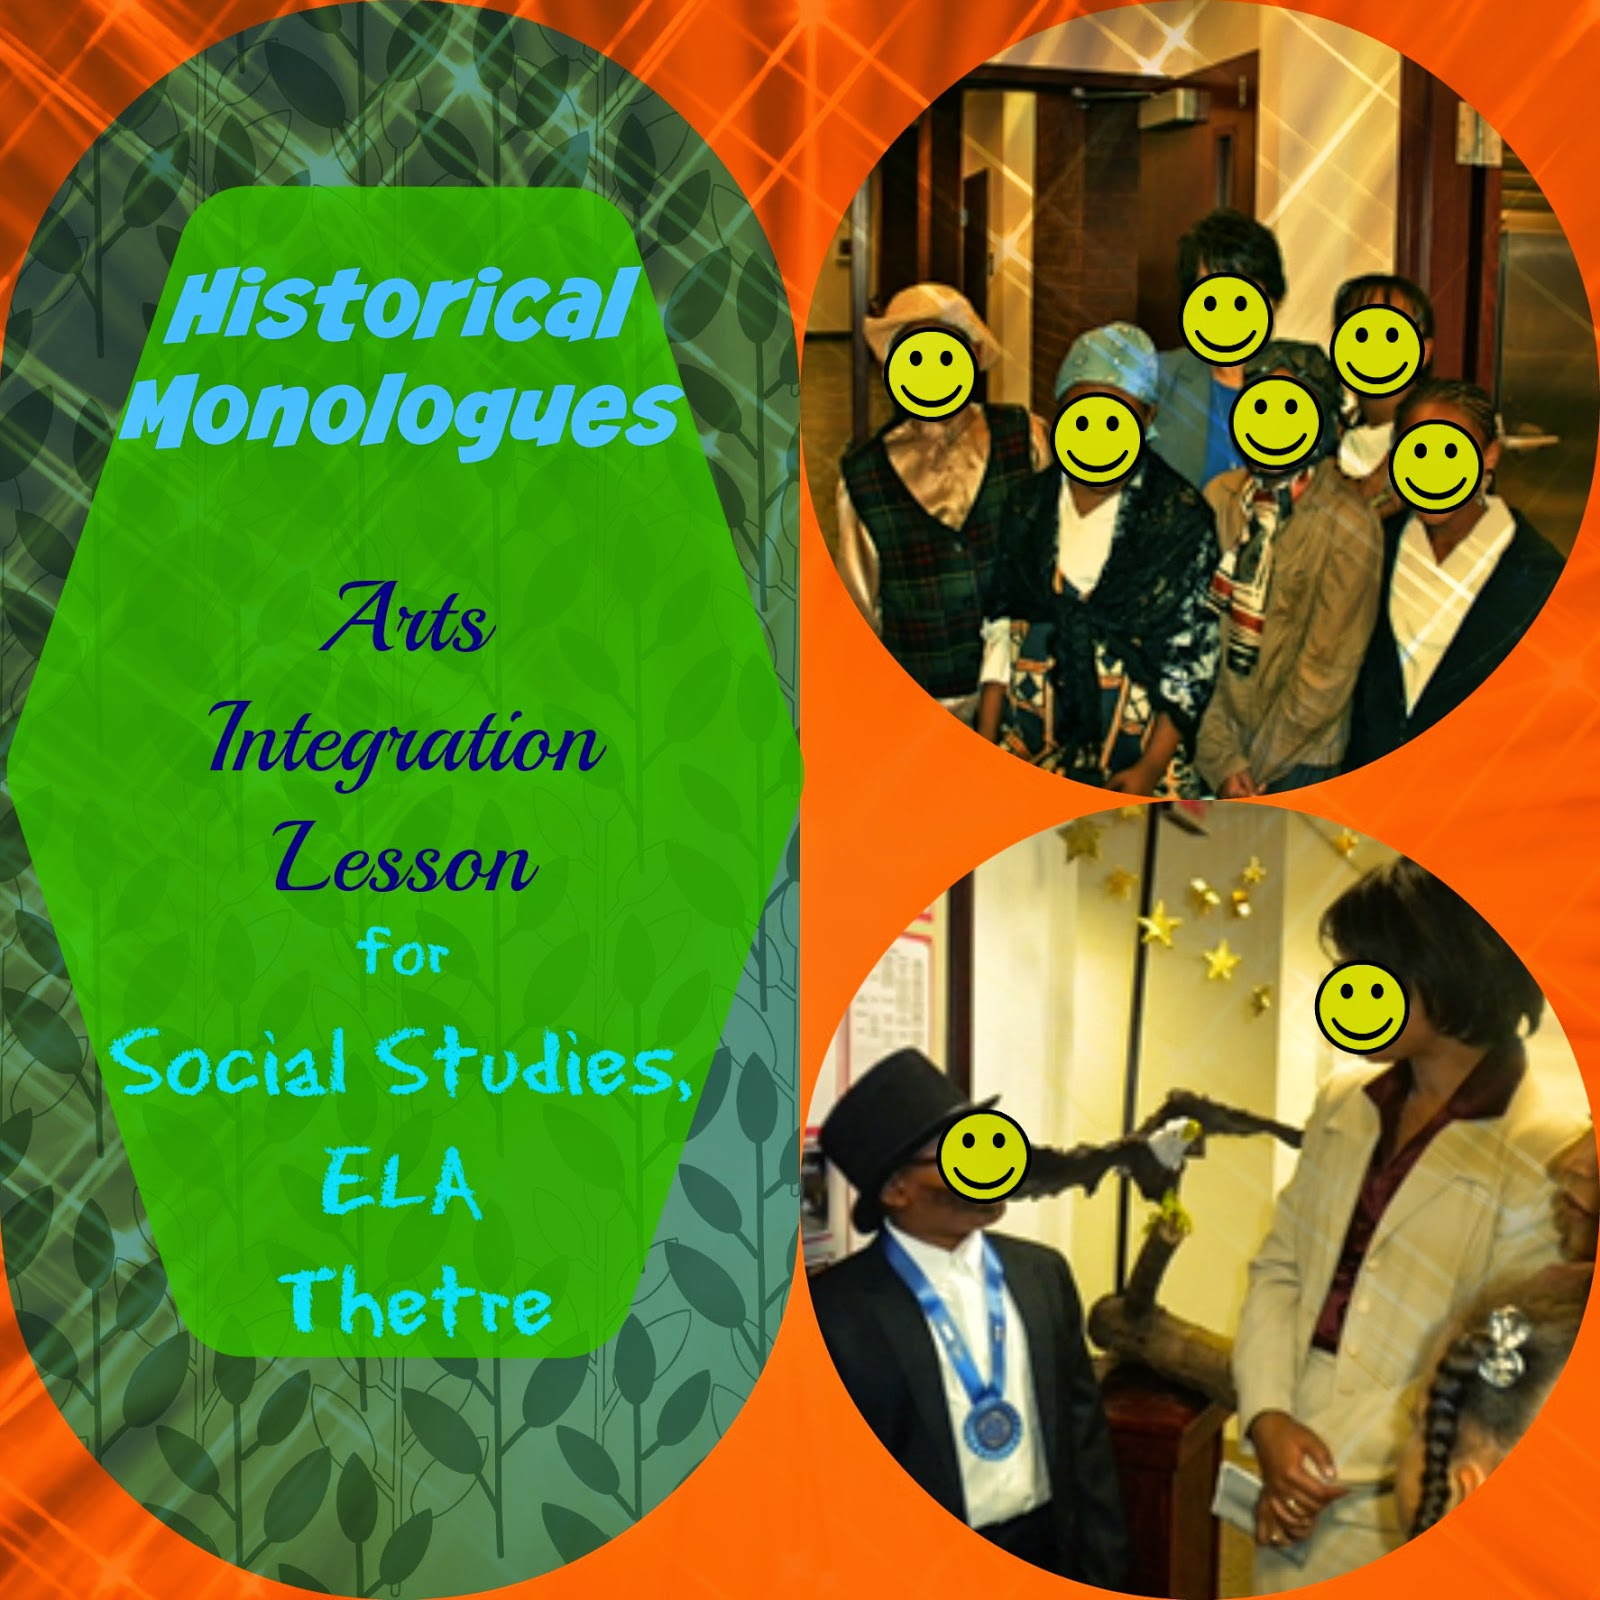 Historical Monologues